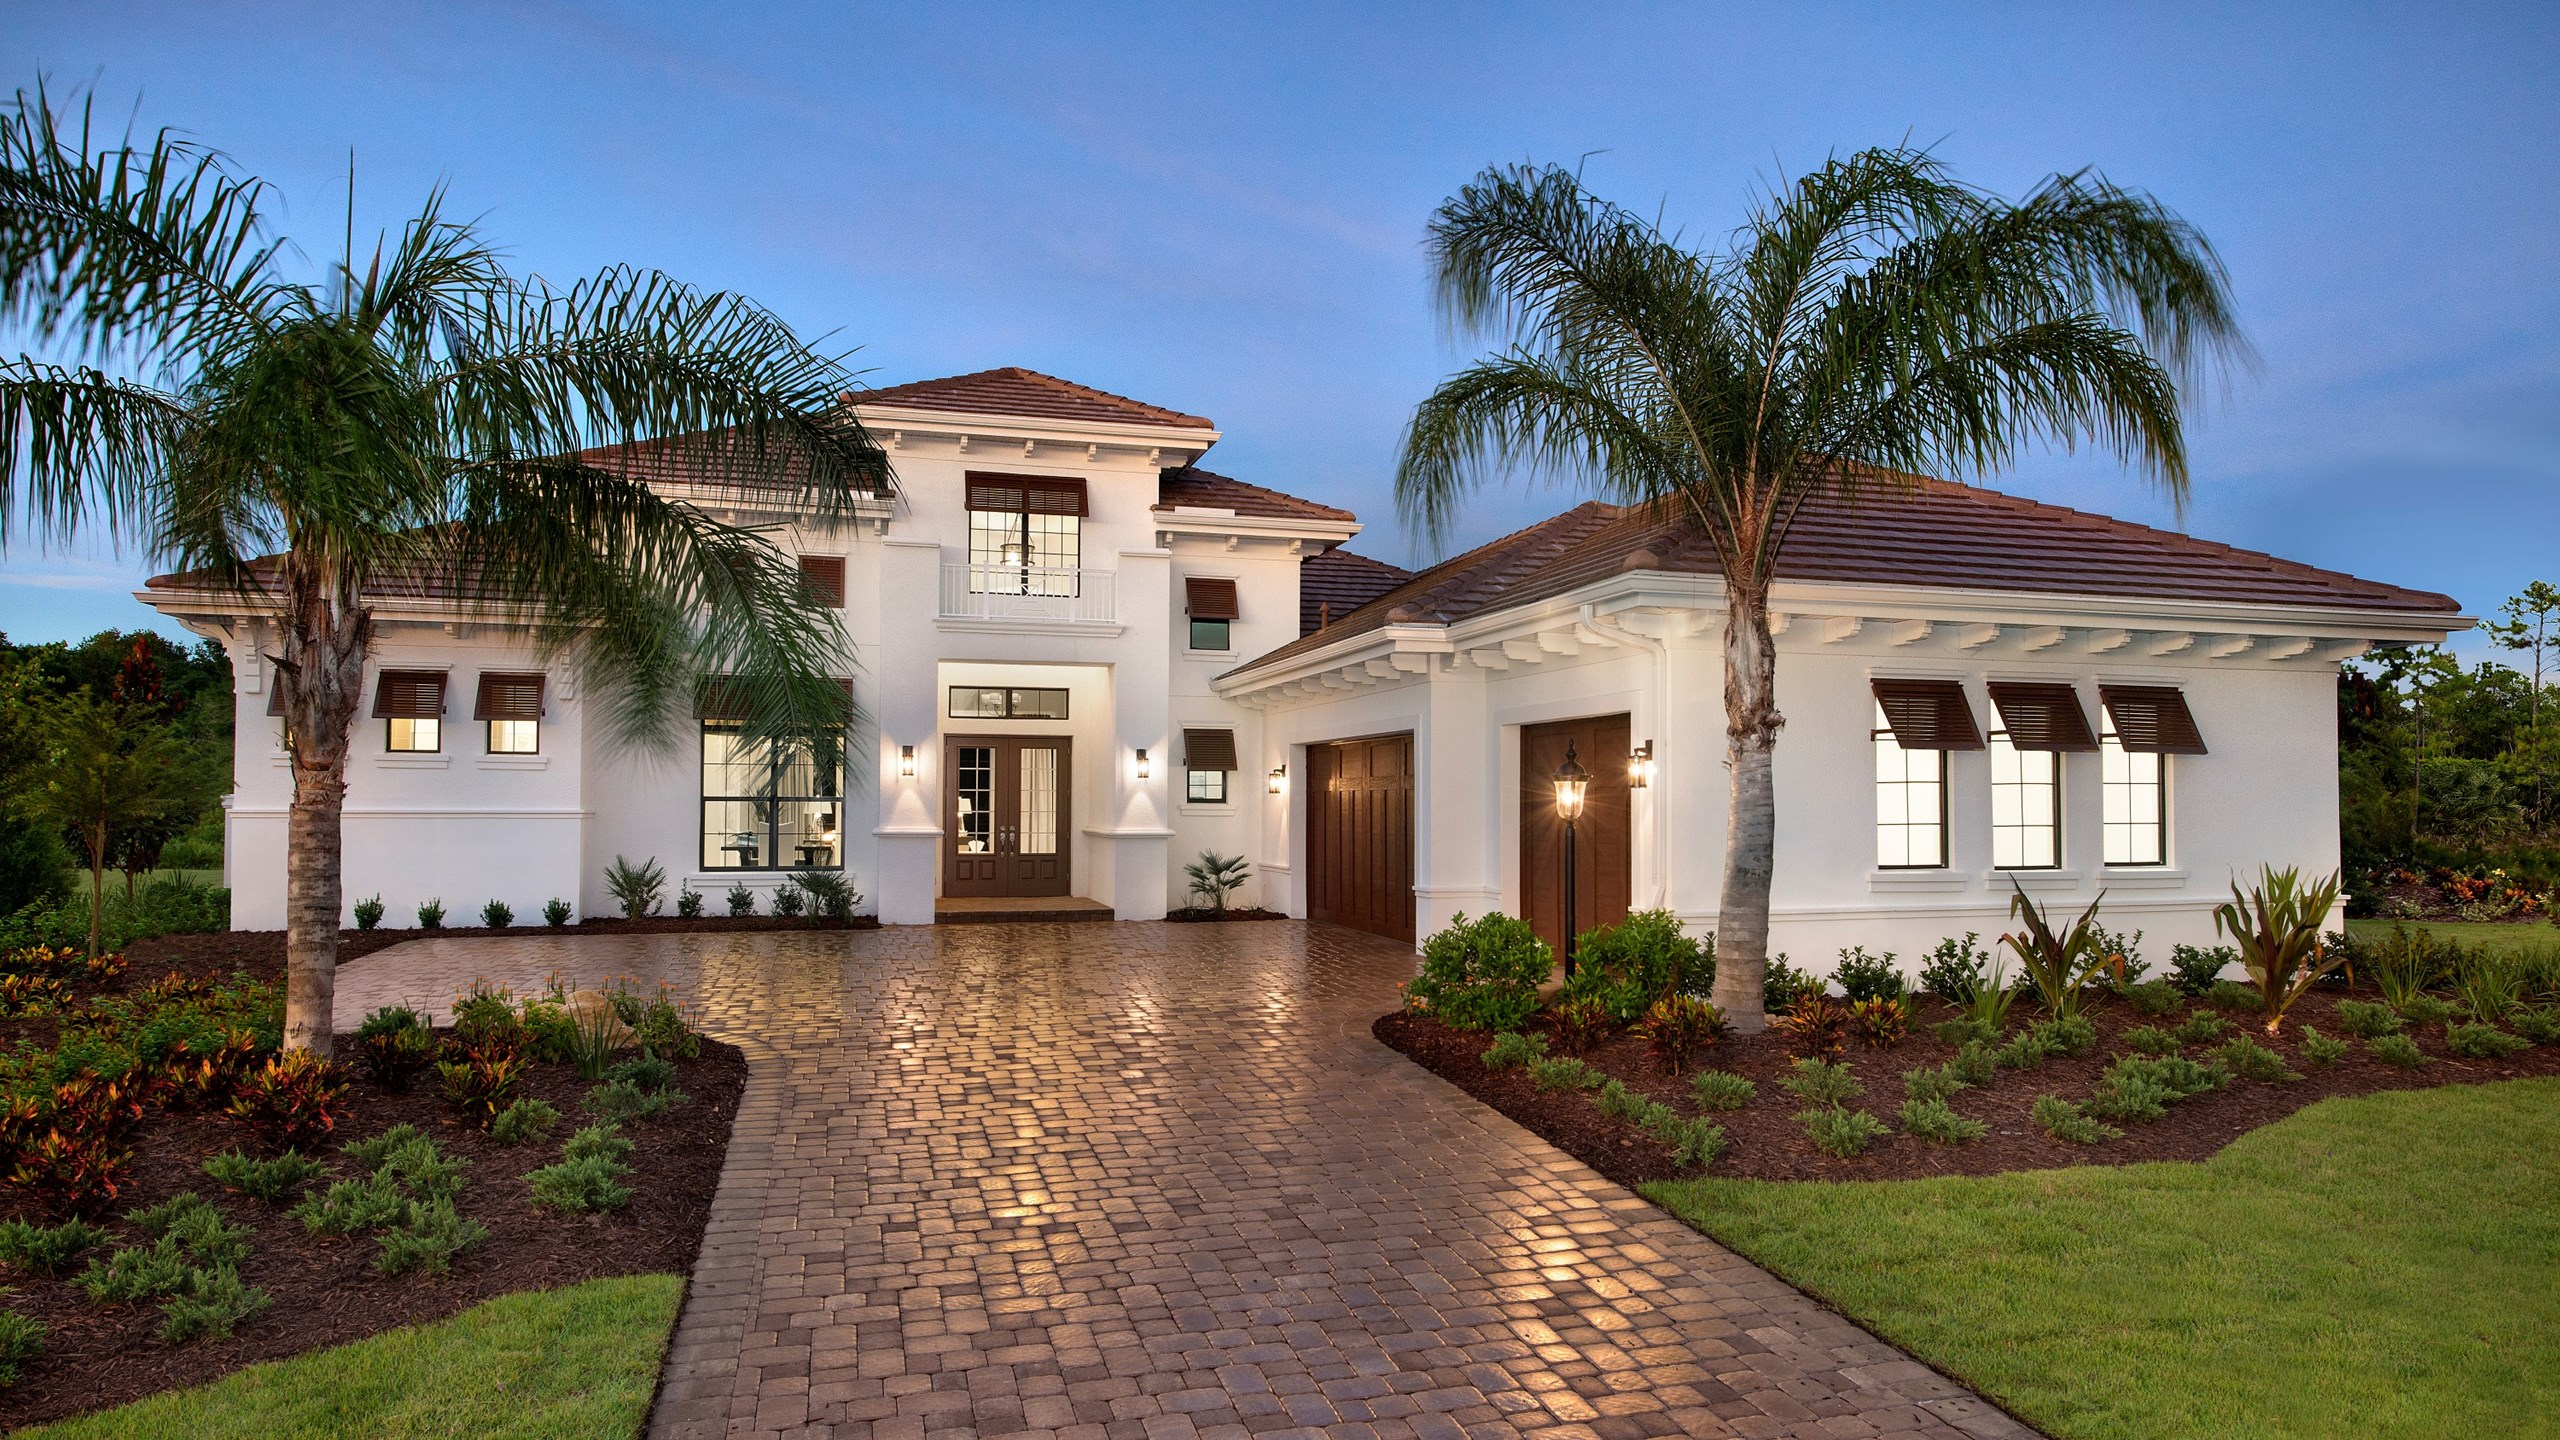 You are currently viewing Free Service for Home Buyers | Lakewood Ranch Florida Real Estate | Lakewood Ranch Realtor | New Homes for Sale | Lakewood Ranch Florida